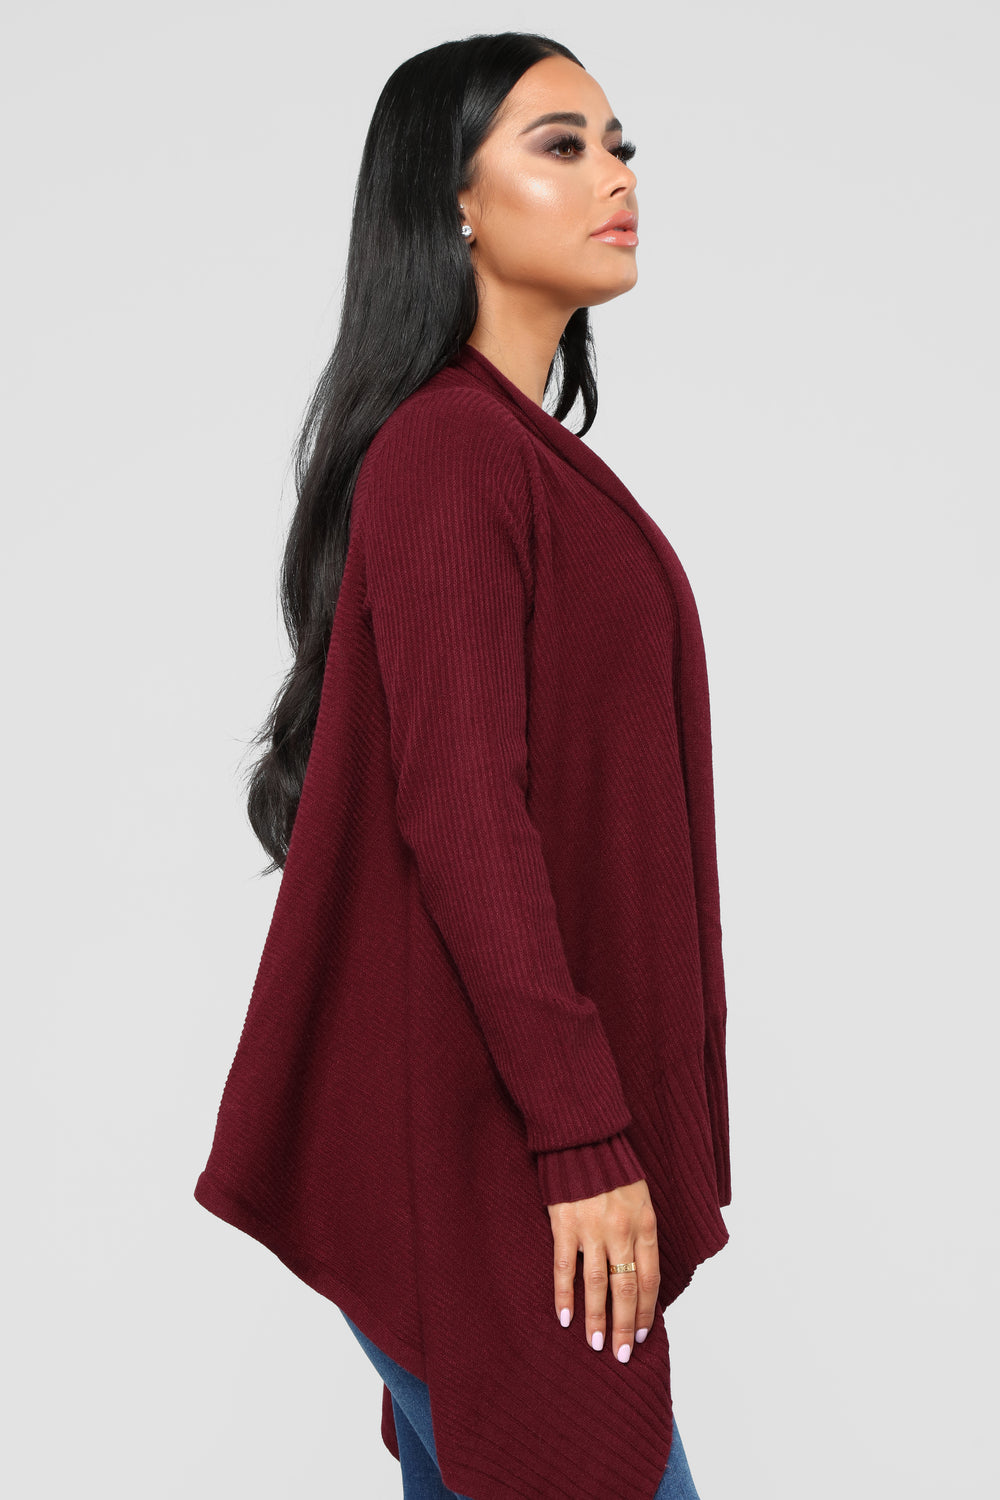 Heartbreak Hotel Cardigan - Wine